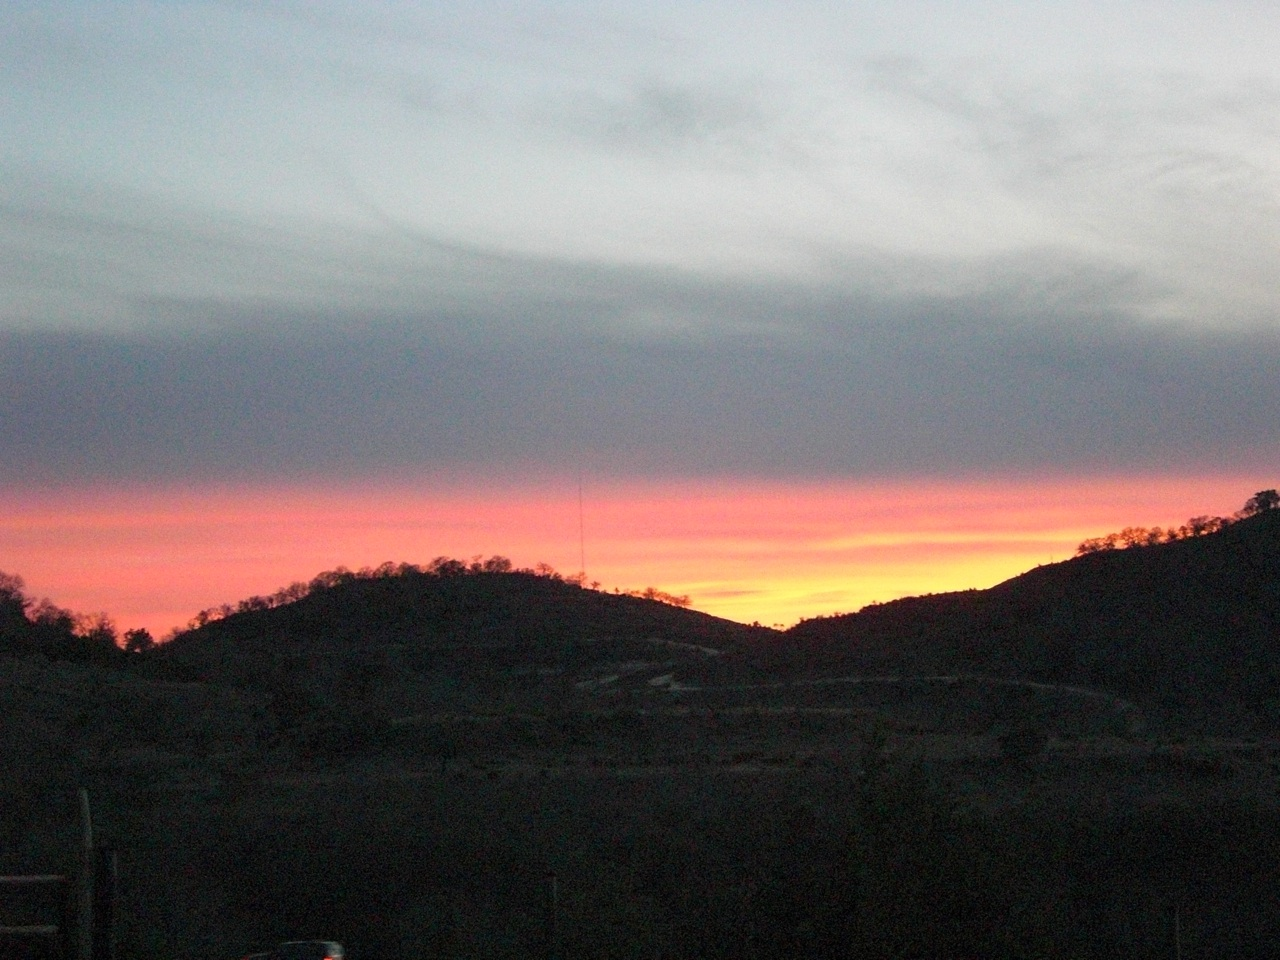 One of the Beautiful Sunsets Here in Hill Country